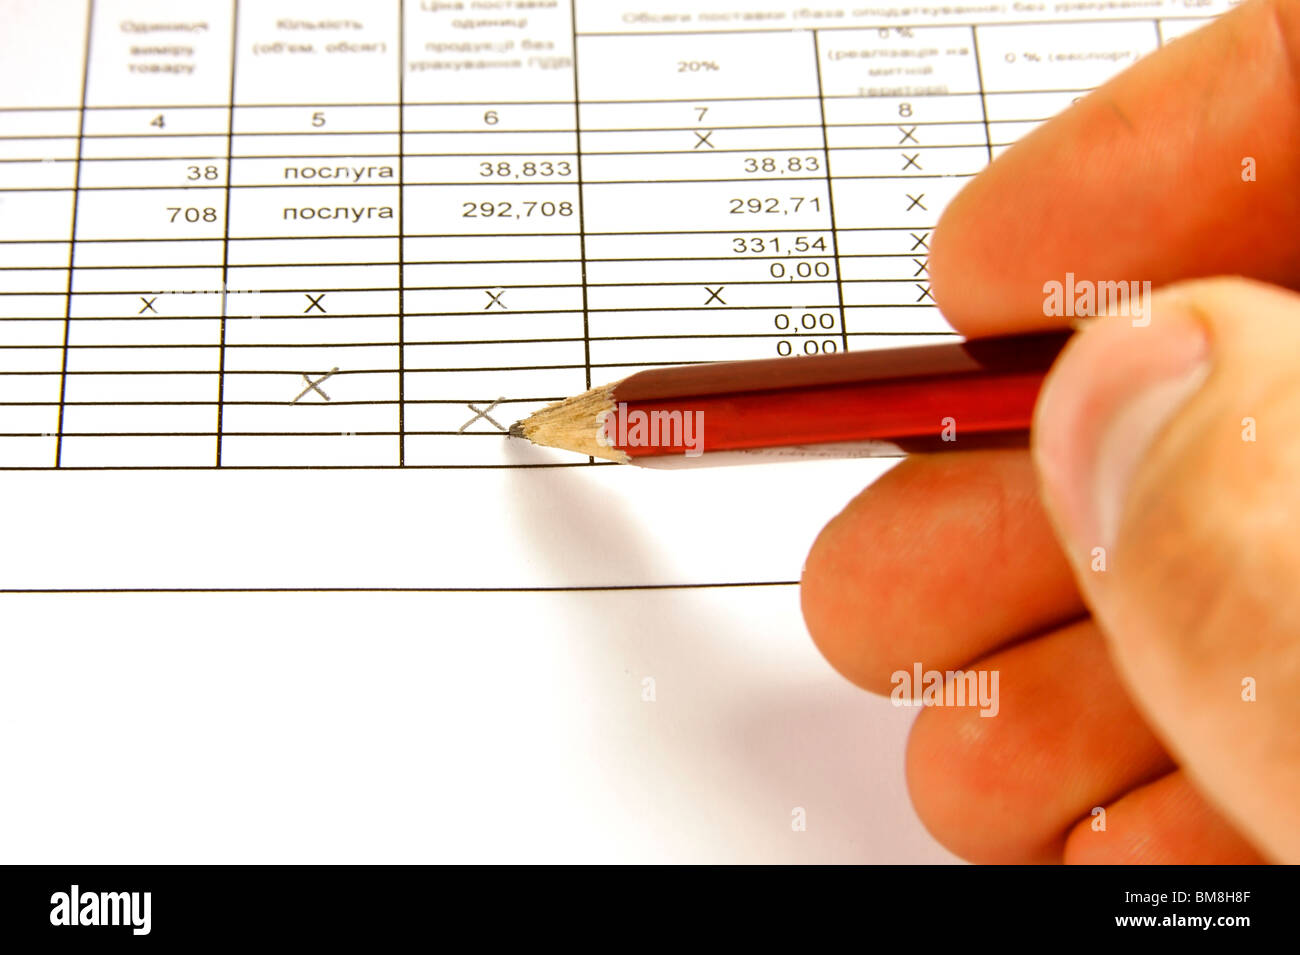 Filling of the financial reporting on business to the project - Stock Image